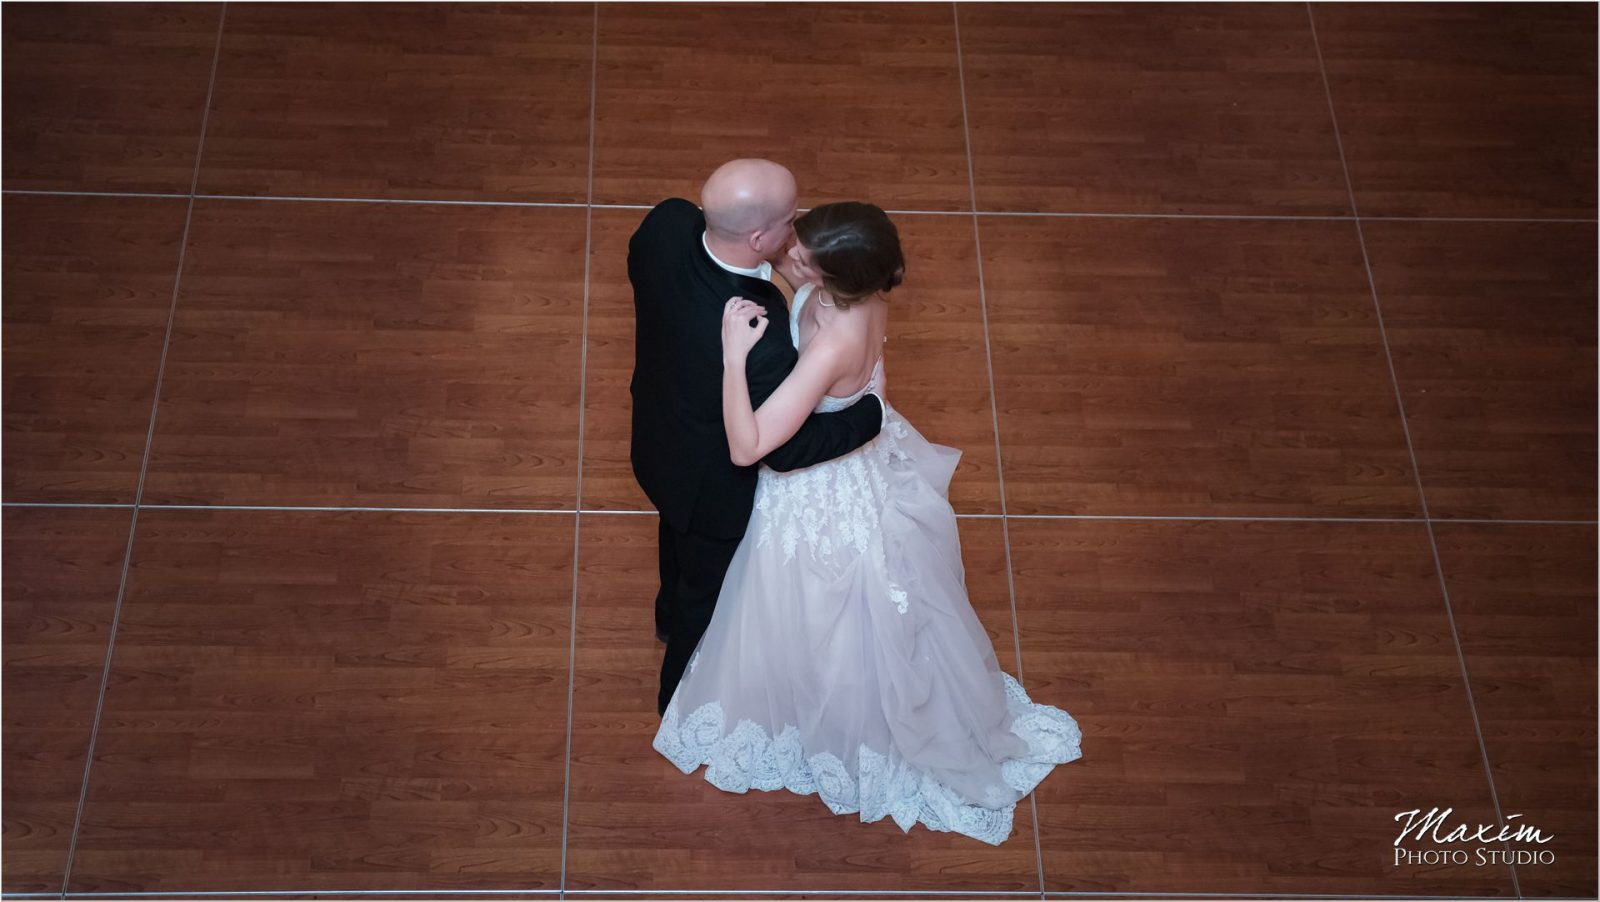 Cincinnati Renaissance Downtown first dance wedding